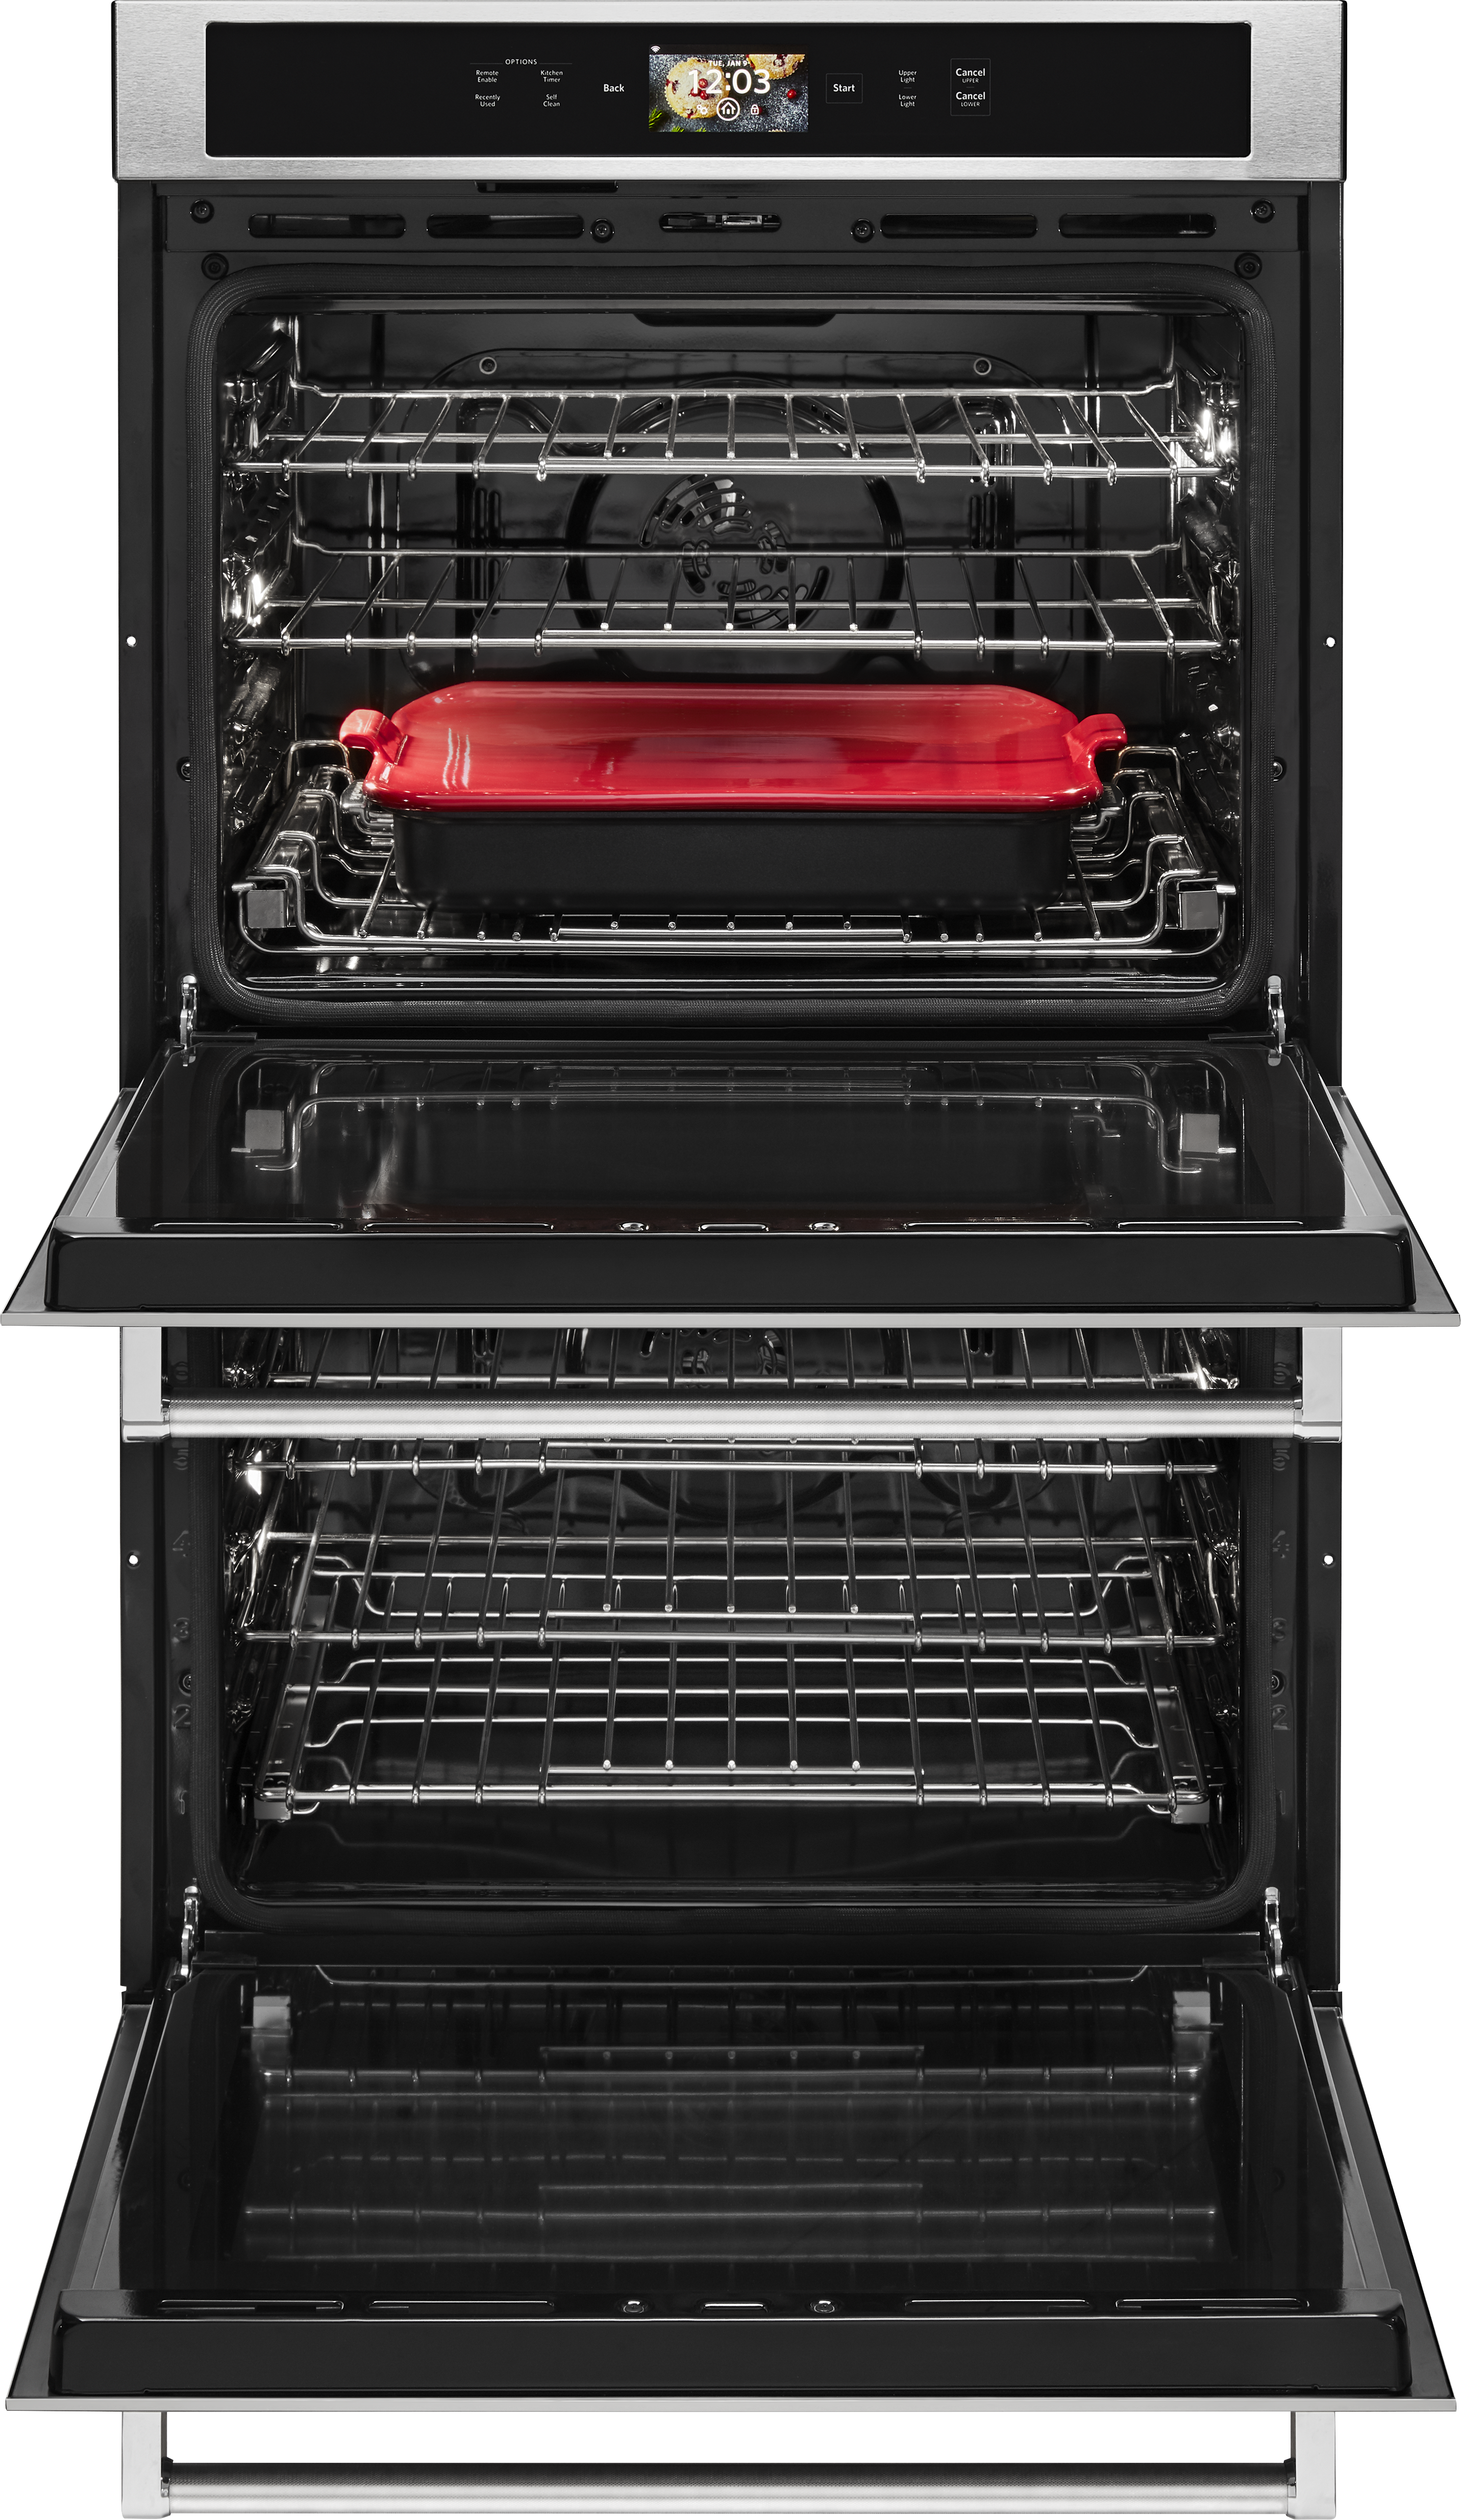 stainless-steel-kitchenaid-smart-oven-with-powered-attachments-kode900hss